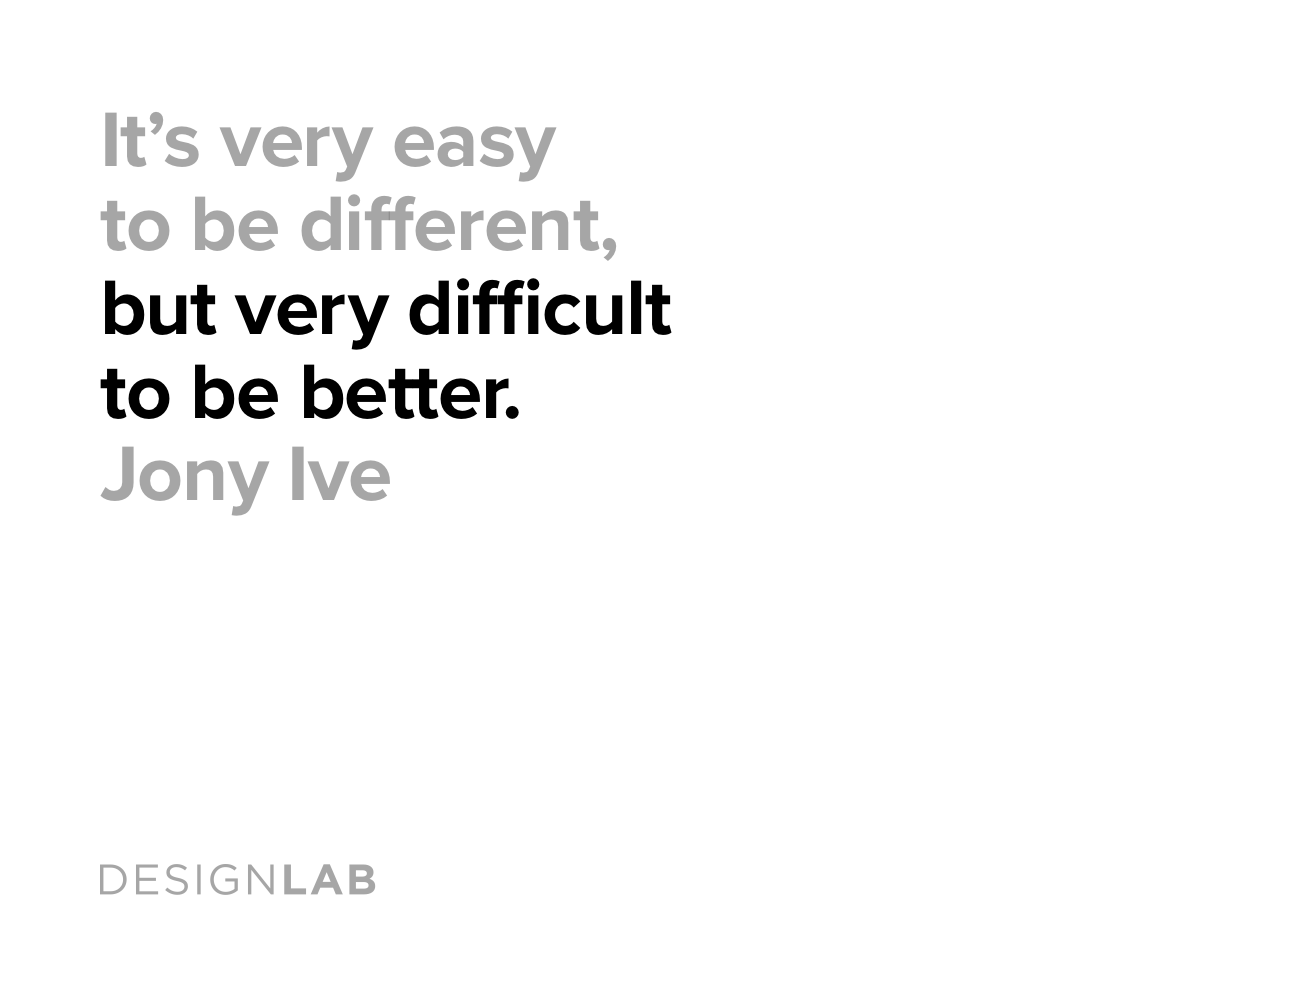 It's very easy to be different, but very difficult to be better. Jony Ive